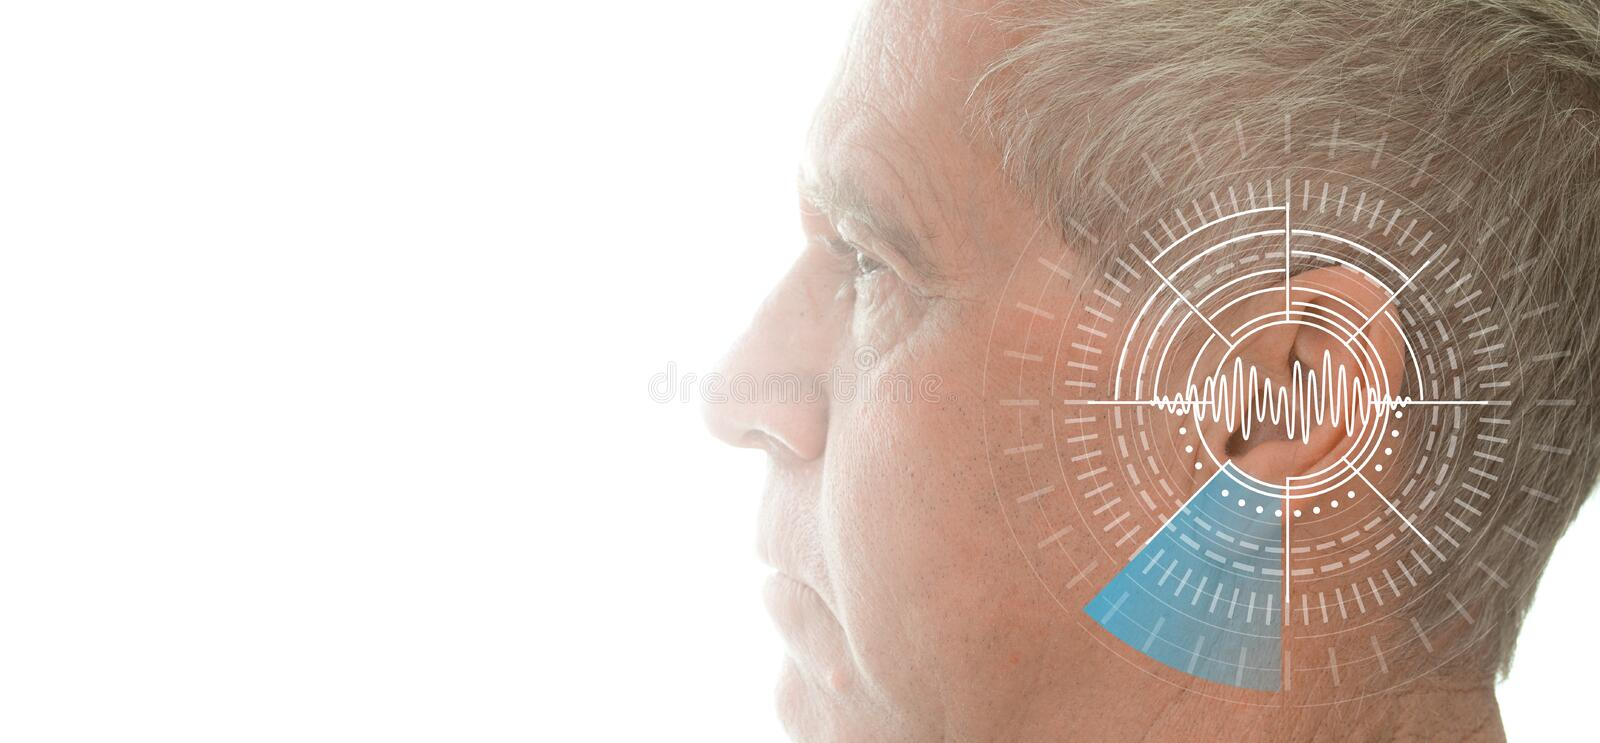 Hearing test showing ear of senior man with sound waves simulation technology. Isolated on white banner royalty free stock image